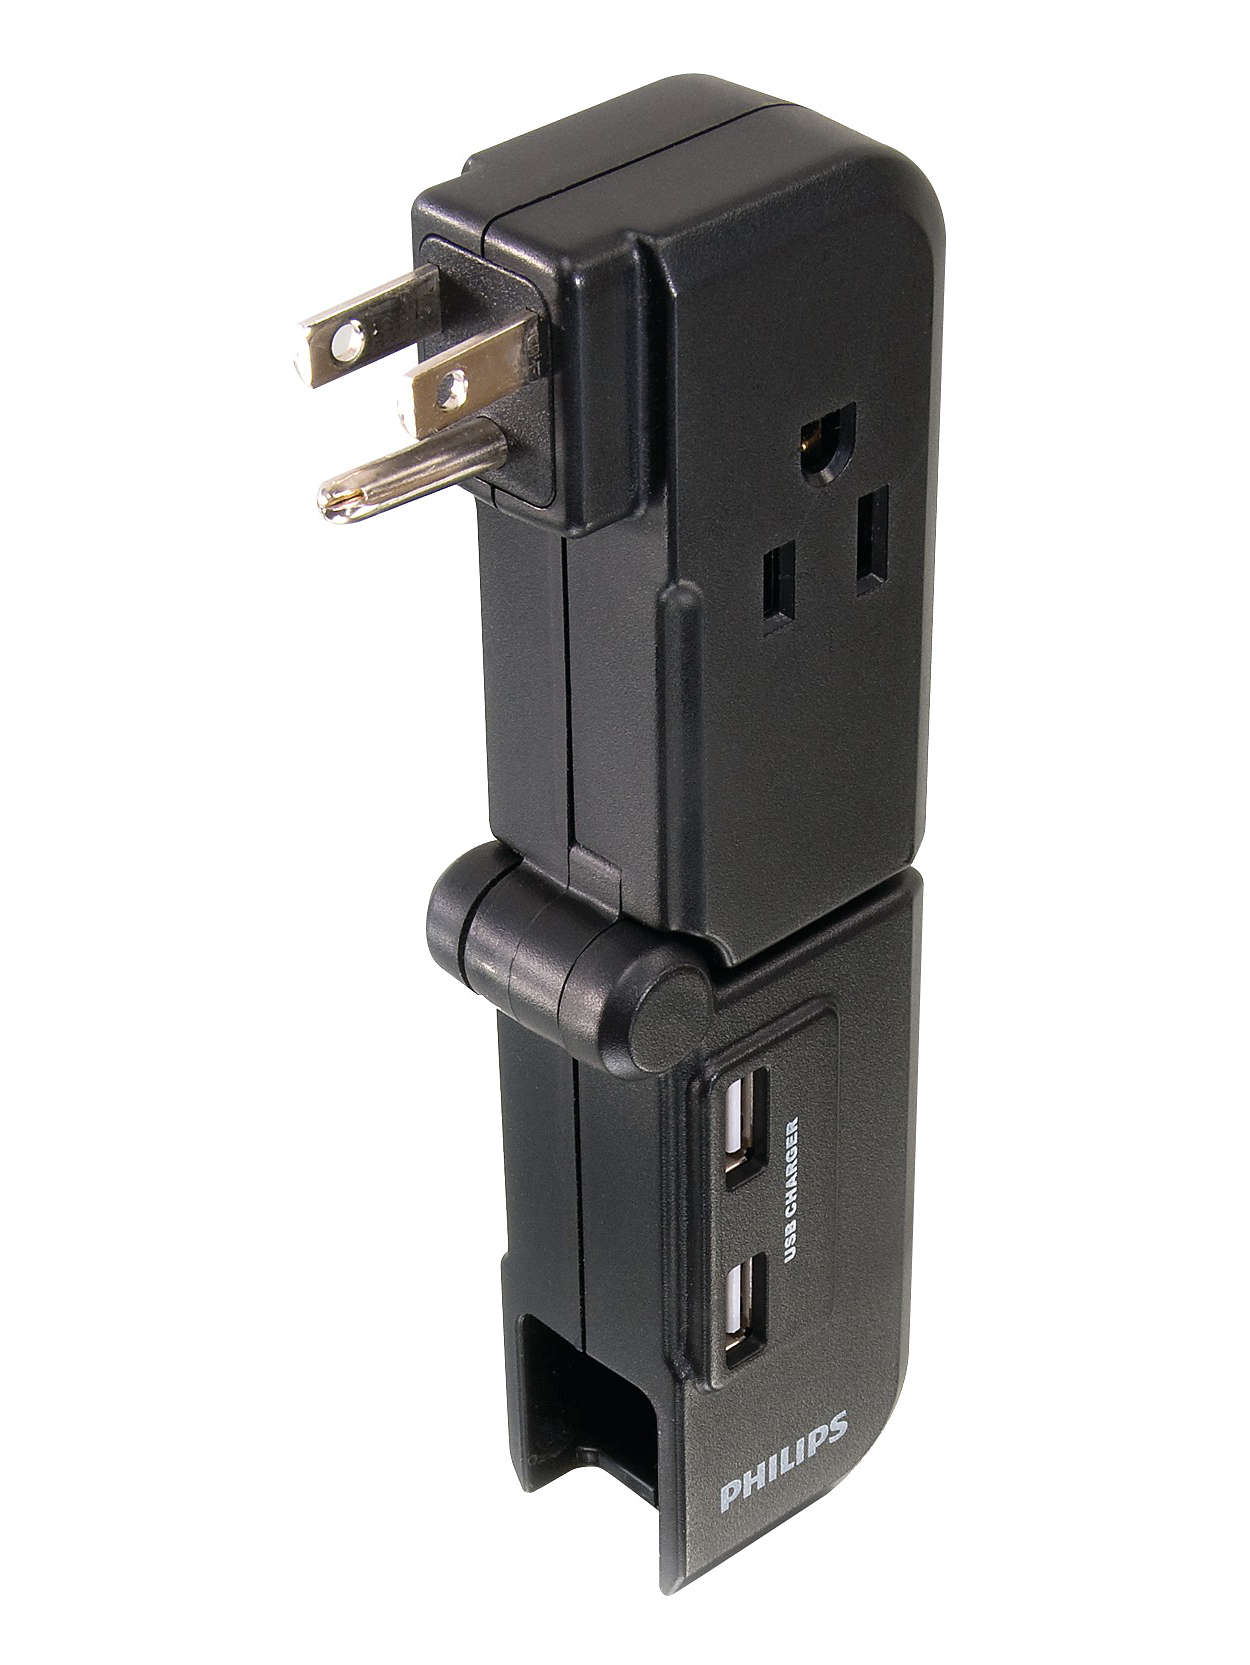 Power multiplier sps1028a 17 philips - Electrical outlet multiplier ...